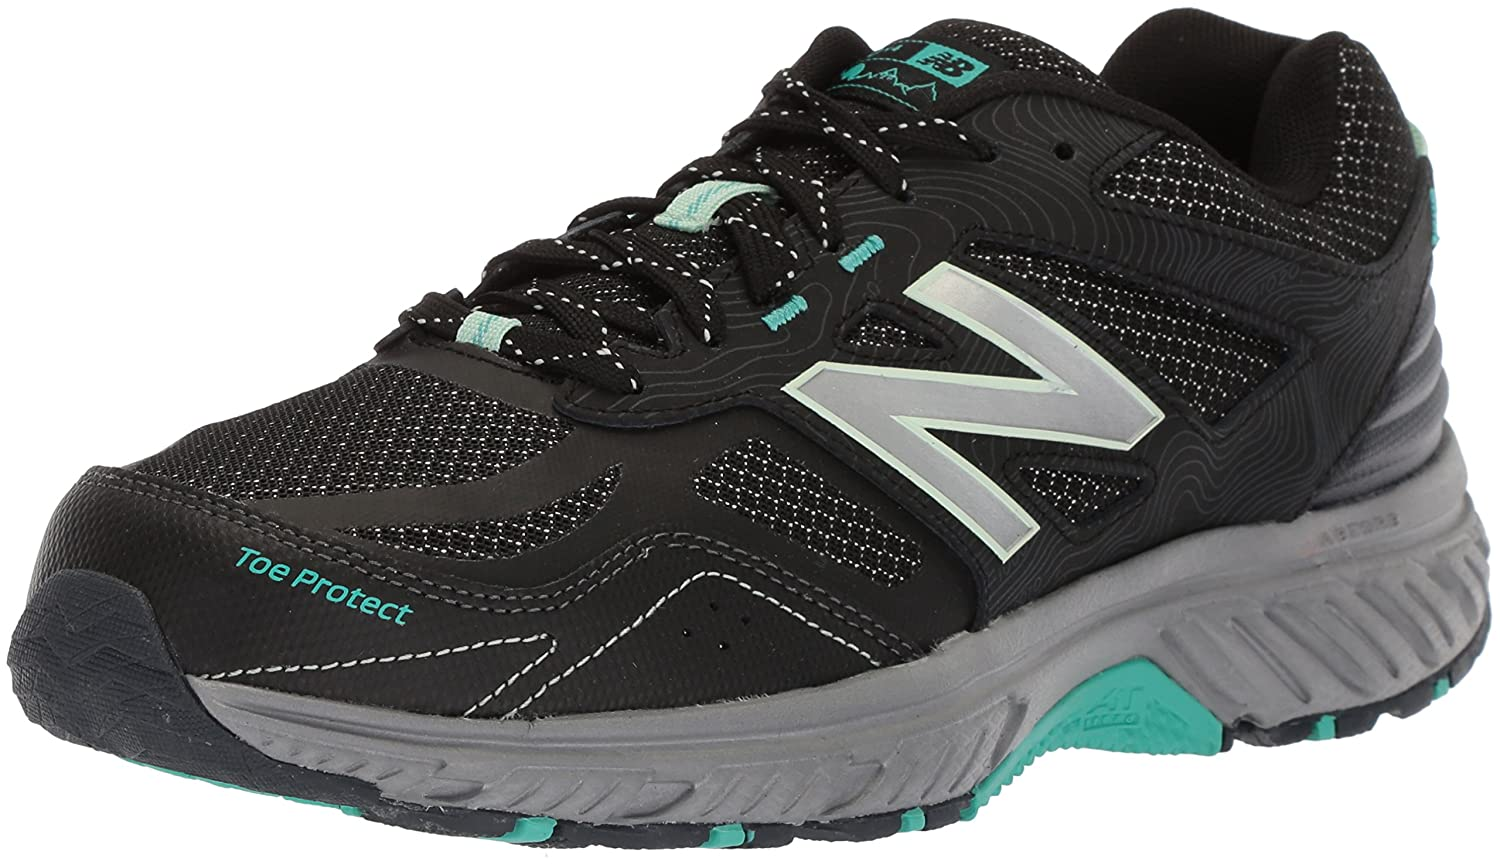 New Balance Women's 510v4 Cushioning Trail Running Shoe B0751SMH5B 10.5 D US|Black